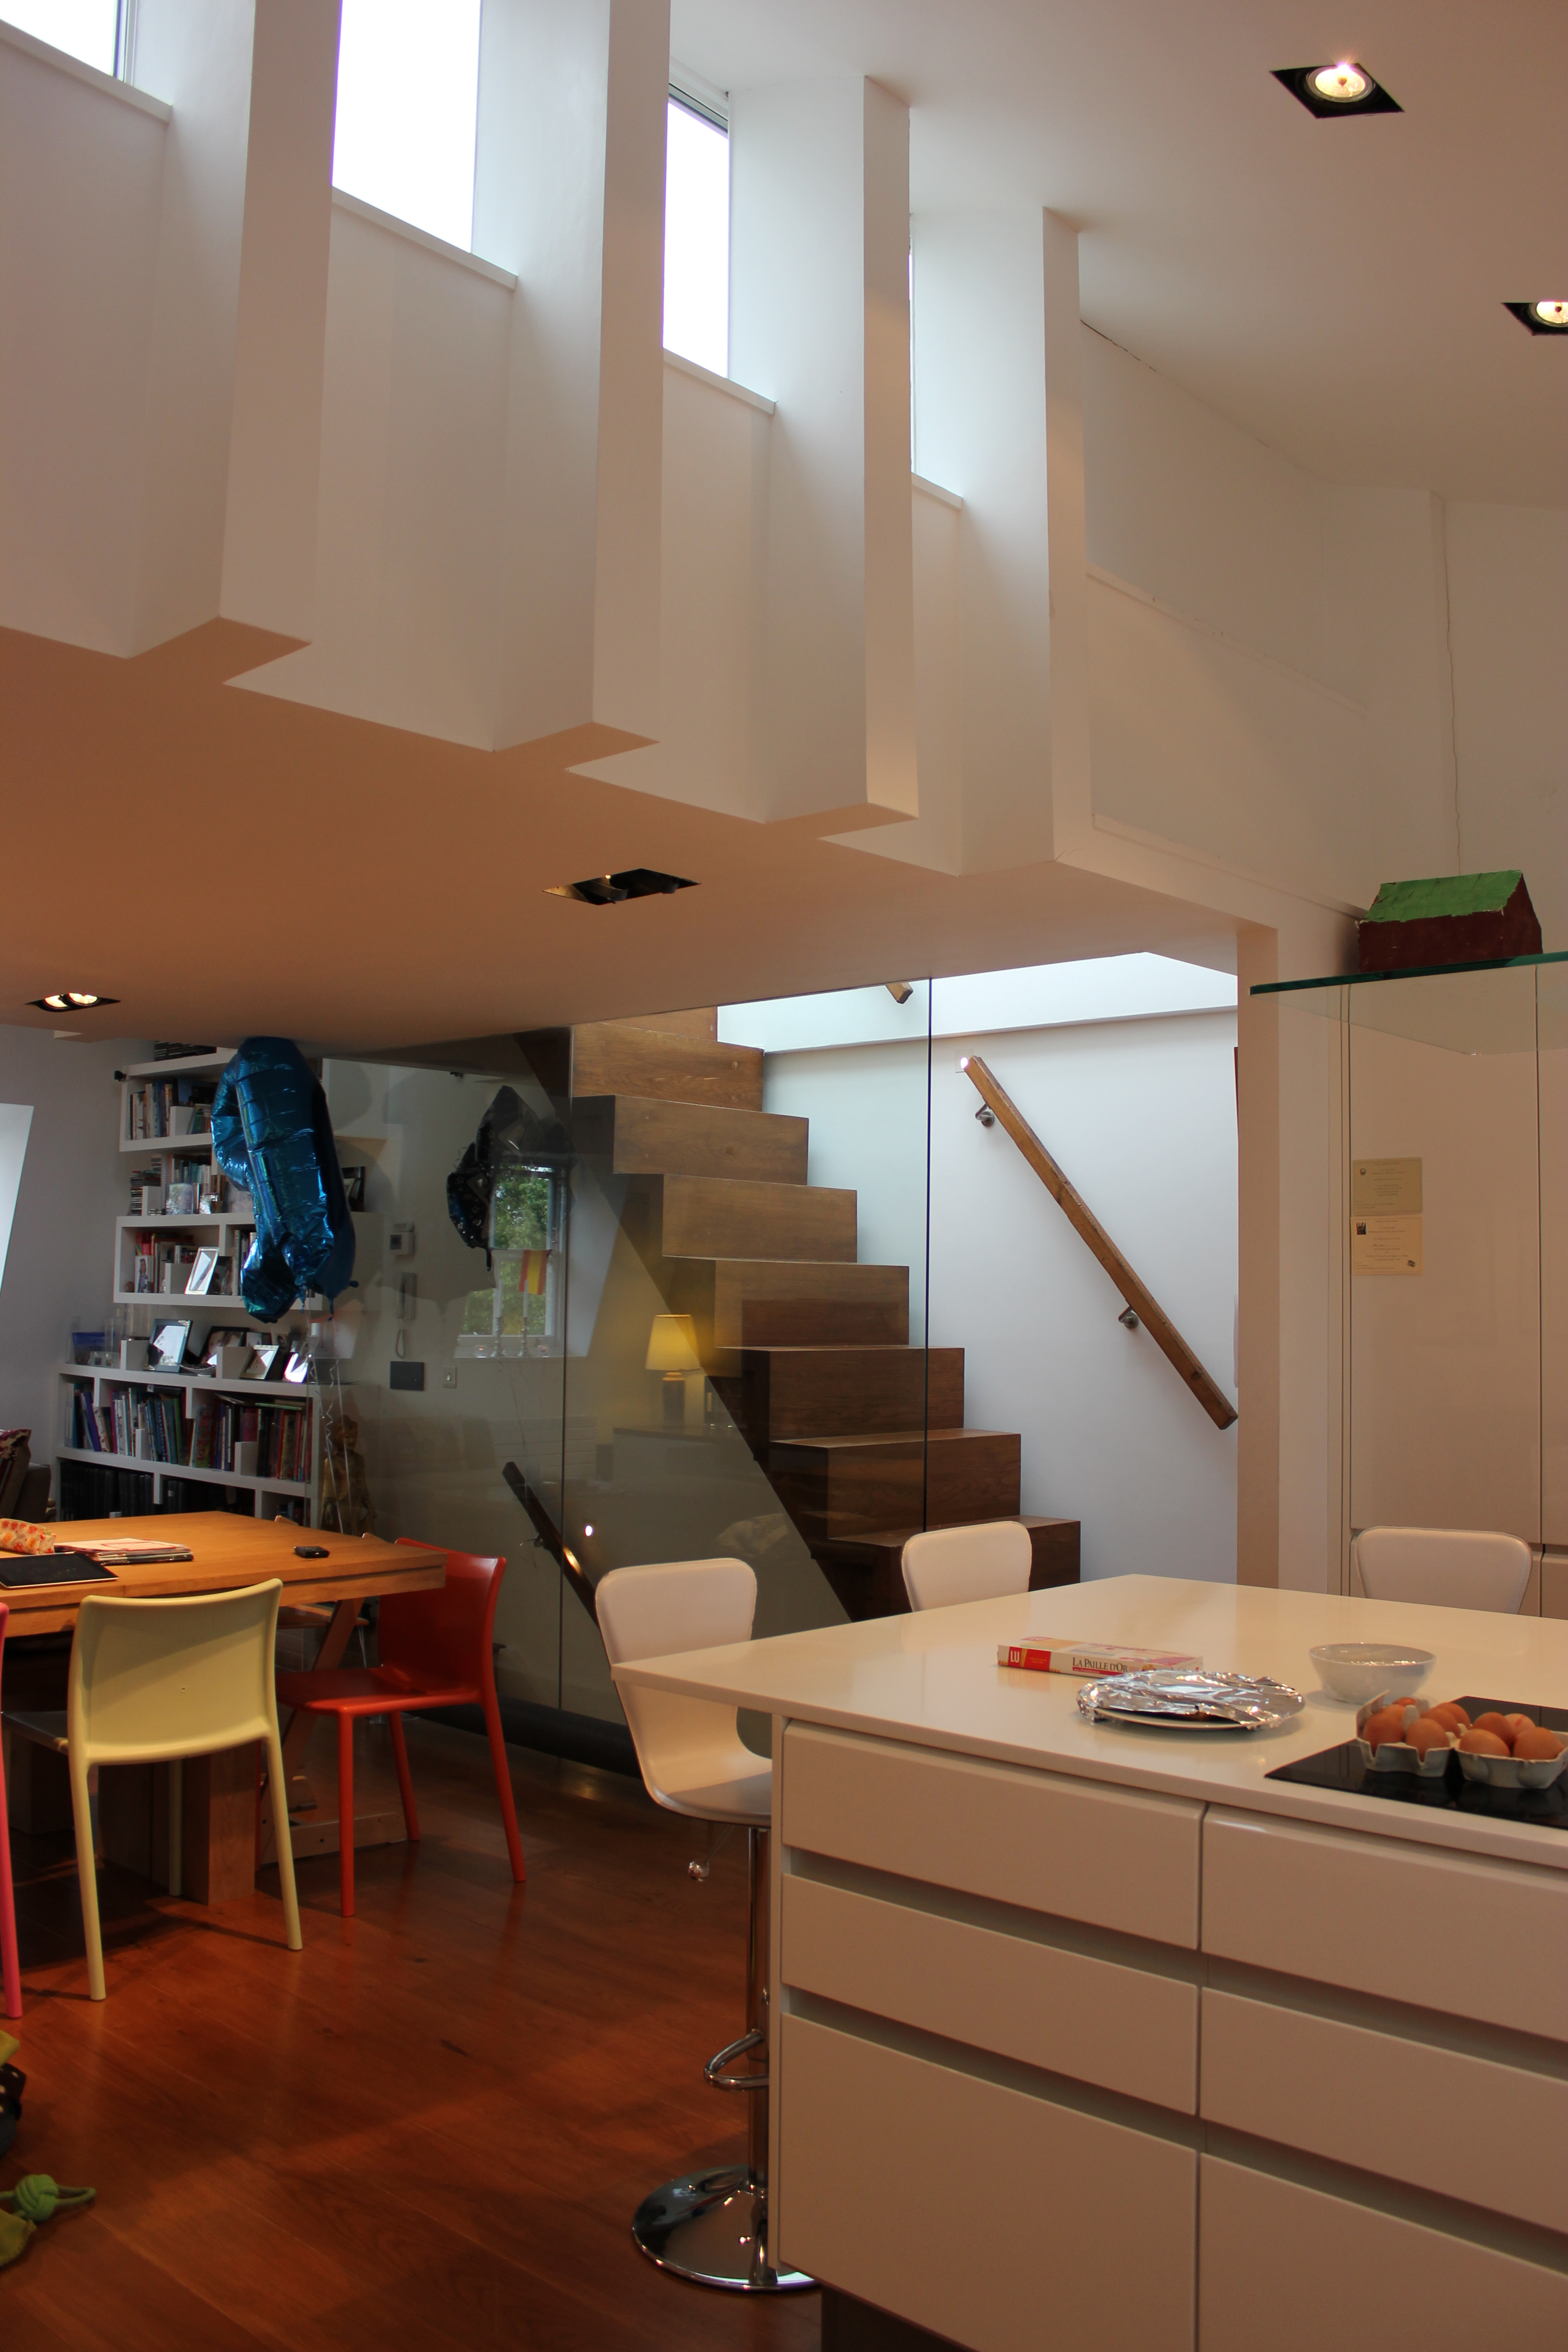 View from kitchen towards staircase